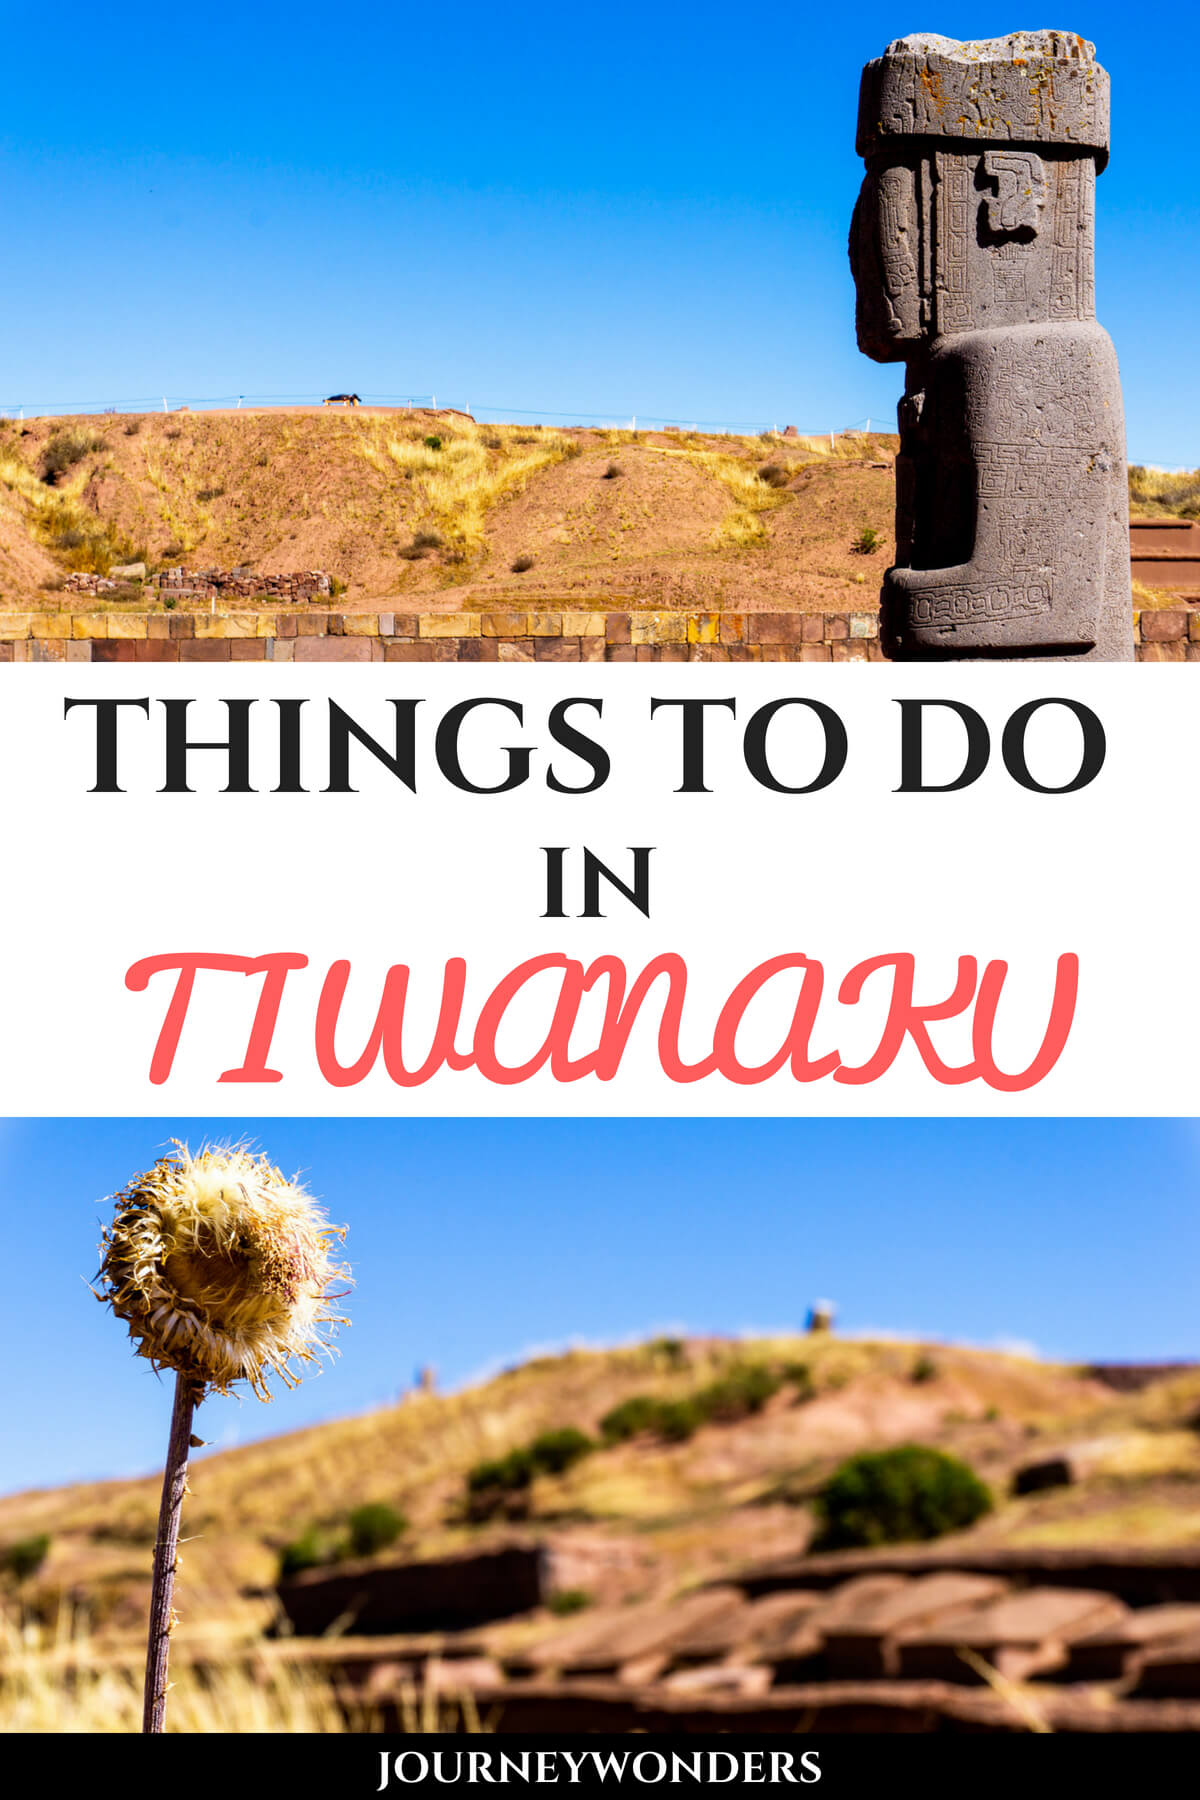 When it comes to Andean Civilizations, the Tiwanaku Culture is one of the most mysterious of them all. Come explore the Tiwanaku Ruins and uncover some of their secrets yo!!! #Bolivia #Tiwanaku #Ruins #Archeology #South America